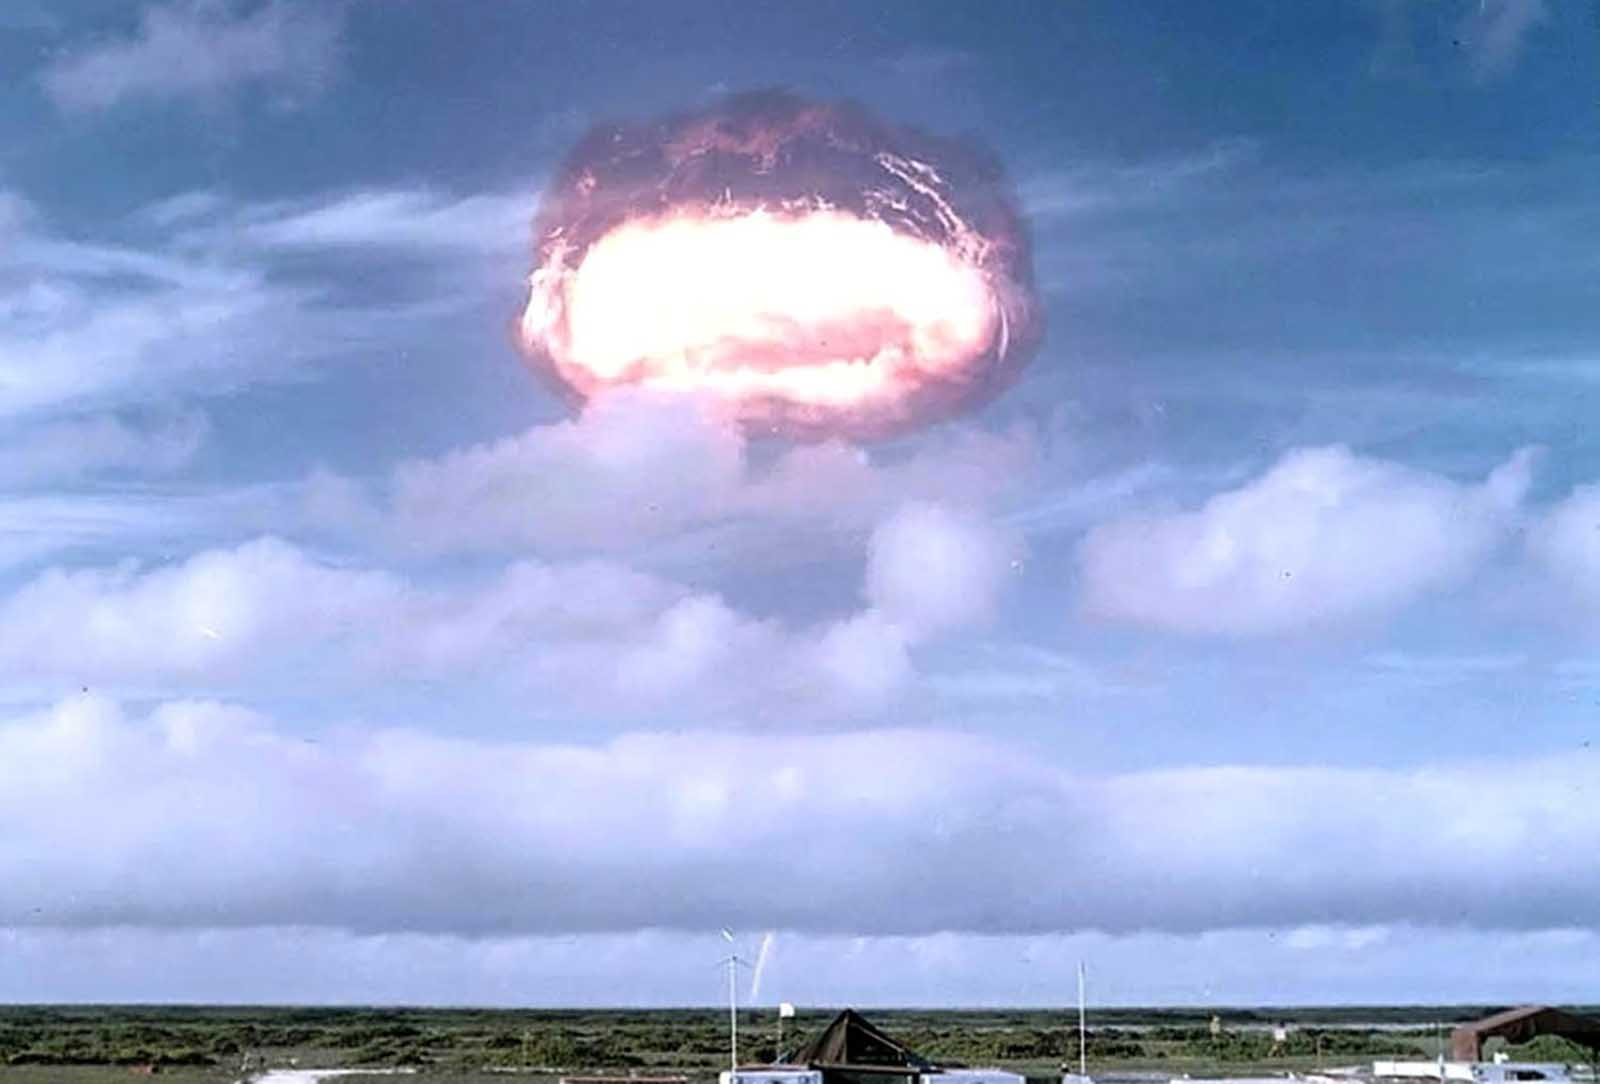 A view of the Arkansas test, part of Operation Dominic, a series of over 100 nuclear test explosions in Nevada and the Pacific in 1962.